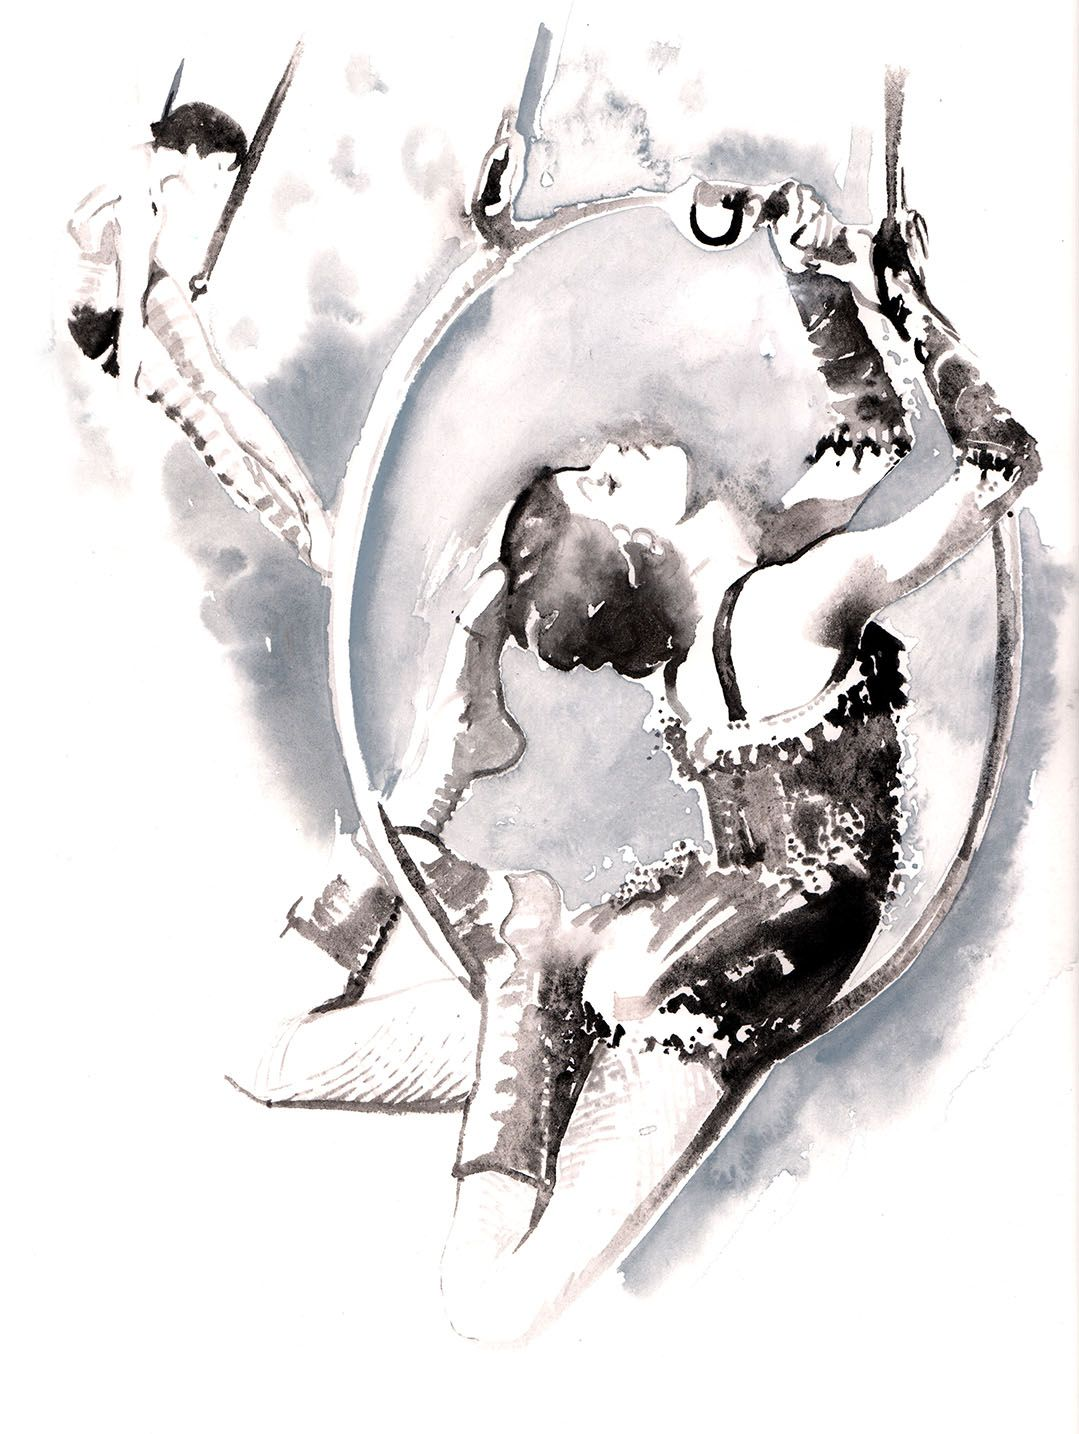 Acrobat 2 in black & white ink. Painted from vintage photo's